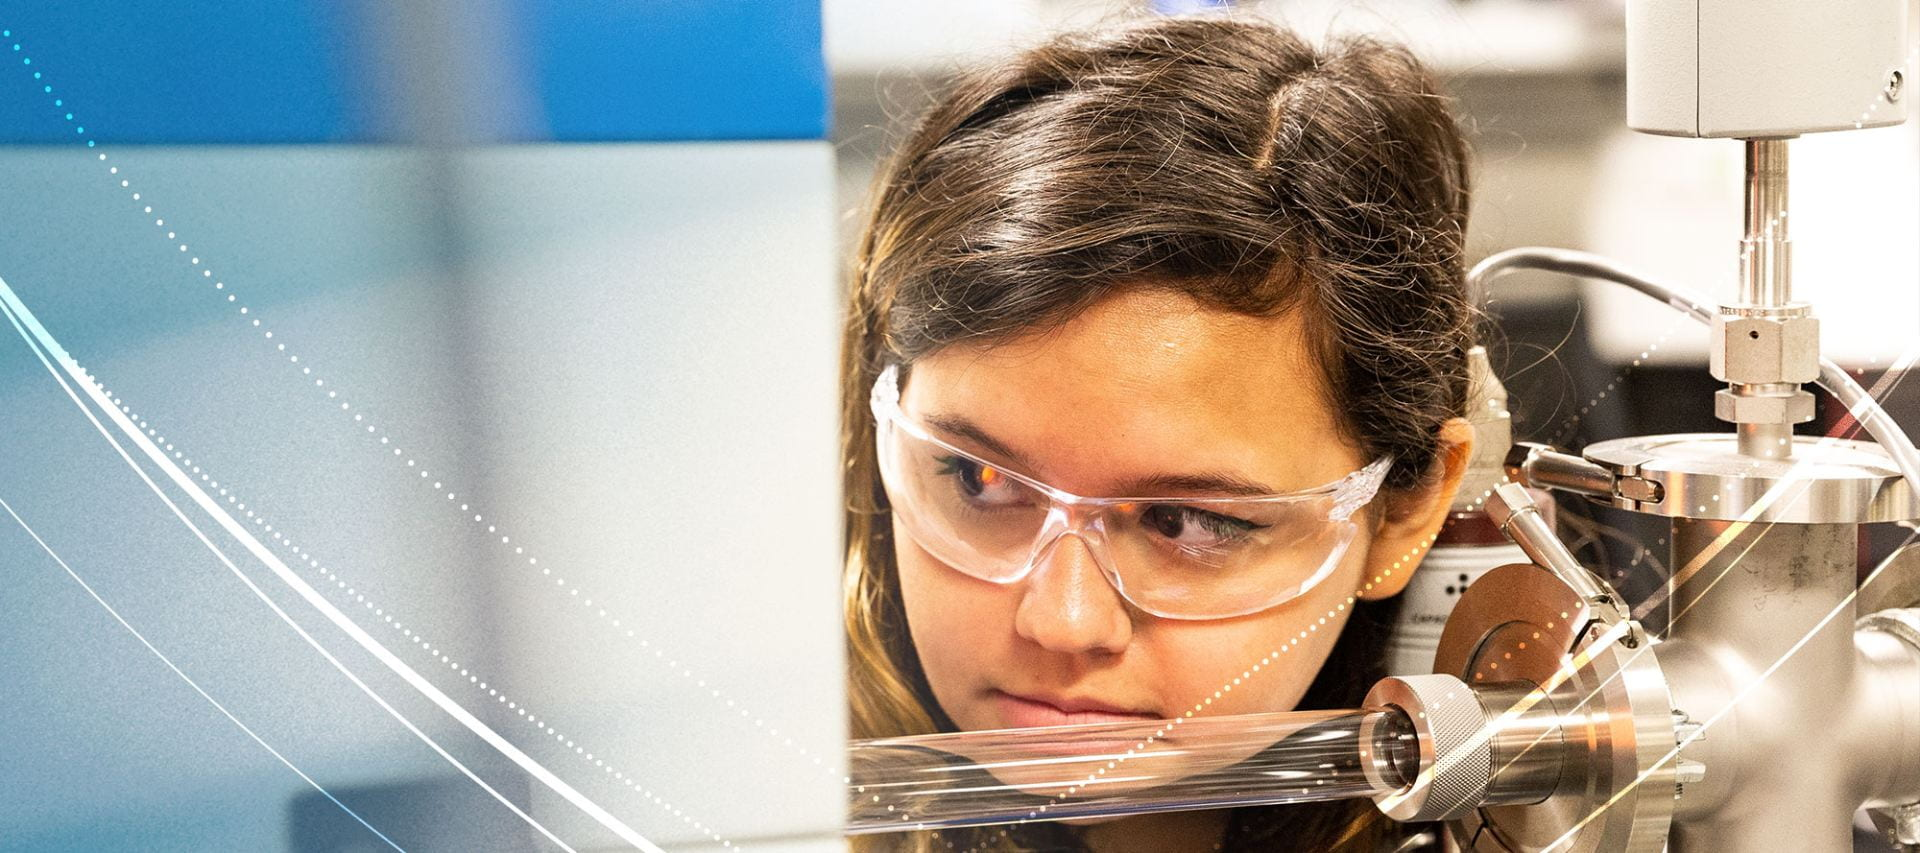 Penn State student, Ana De La Fuente Duran working in a lab.